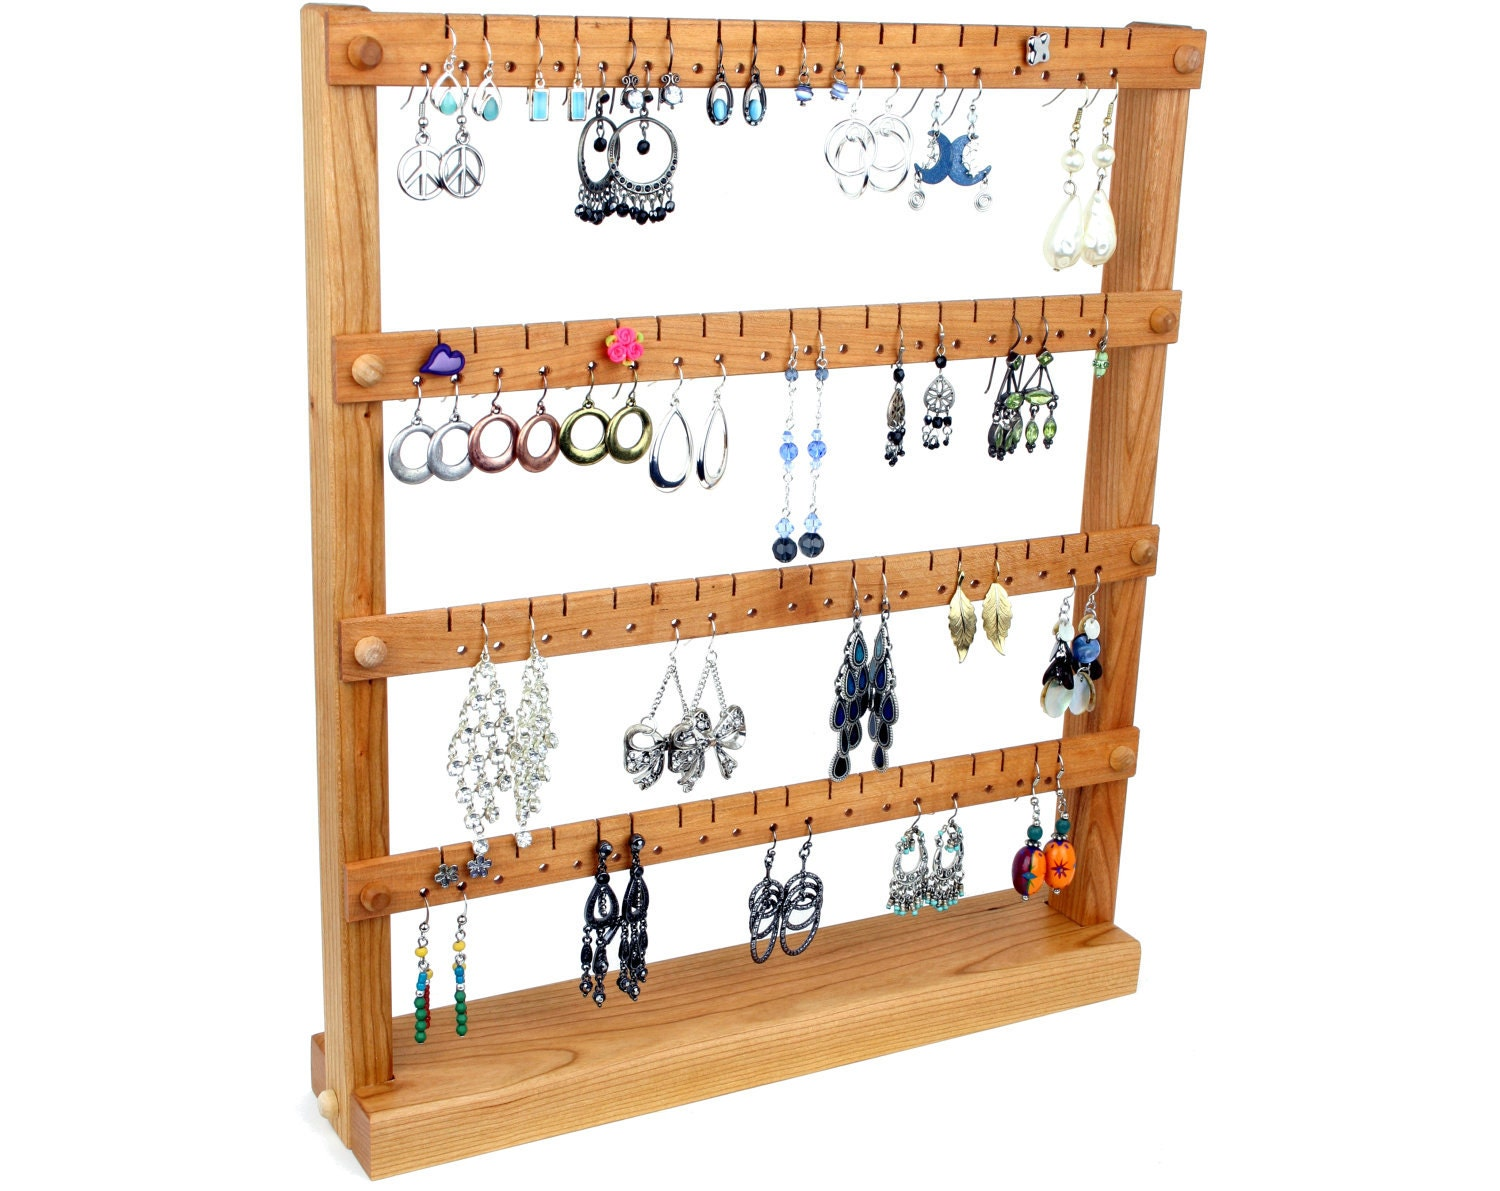 cherry jewelry organizer stand jewelry holder wooden holds. Black Bedroom Furniture Sets. Home Design Ideas